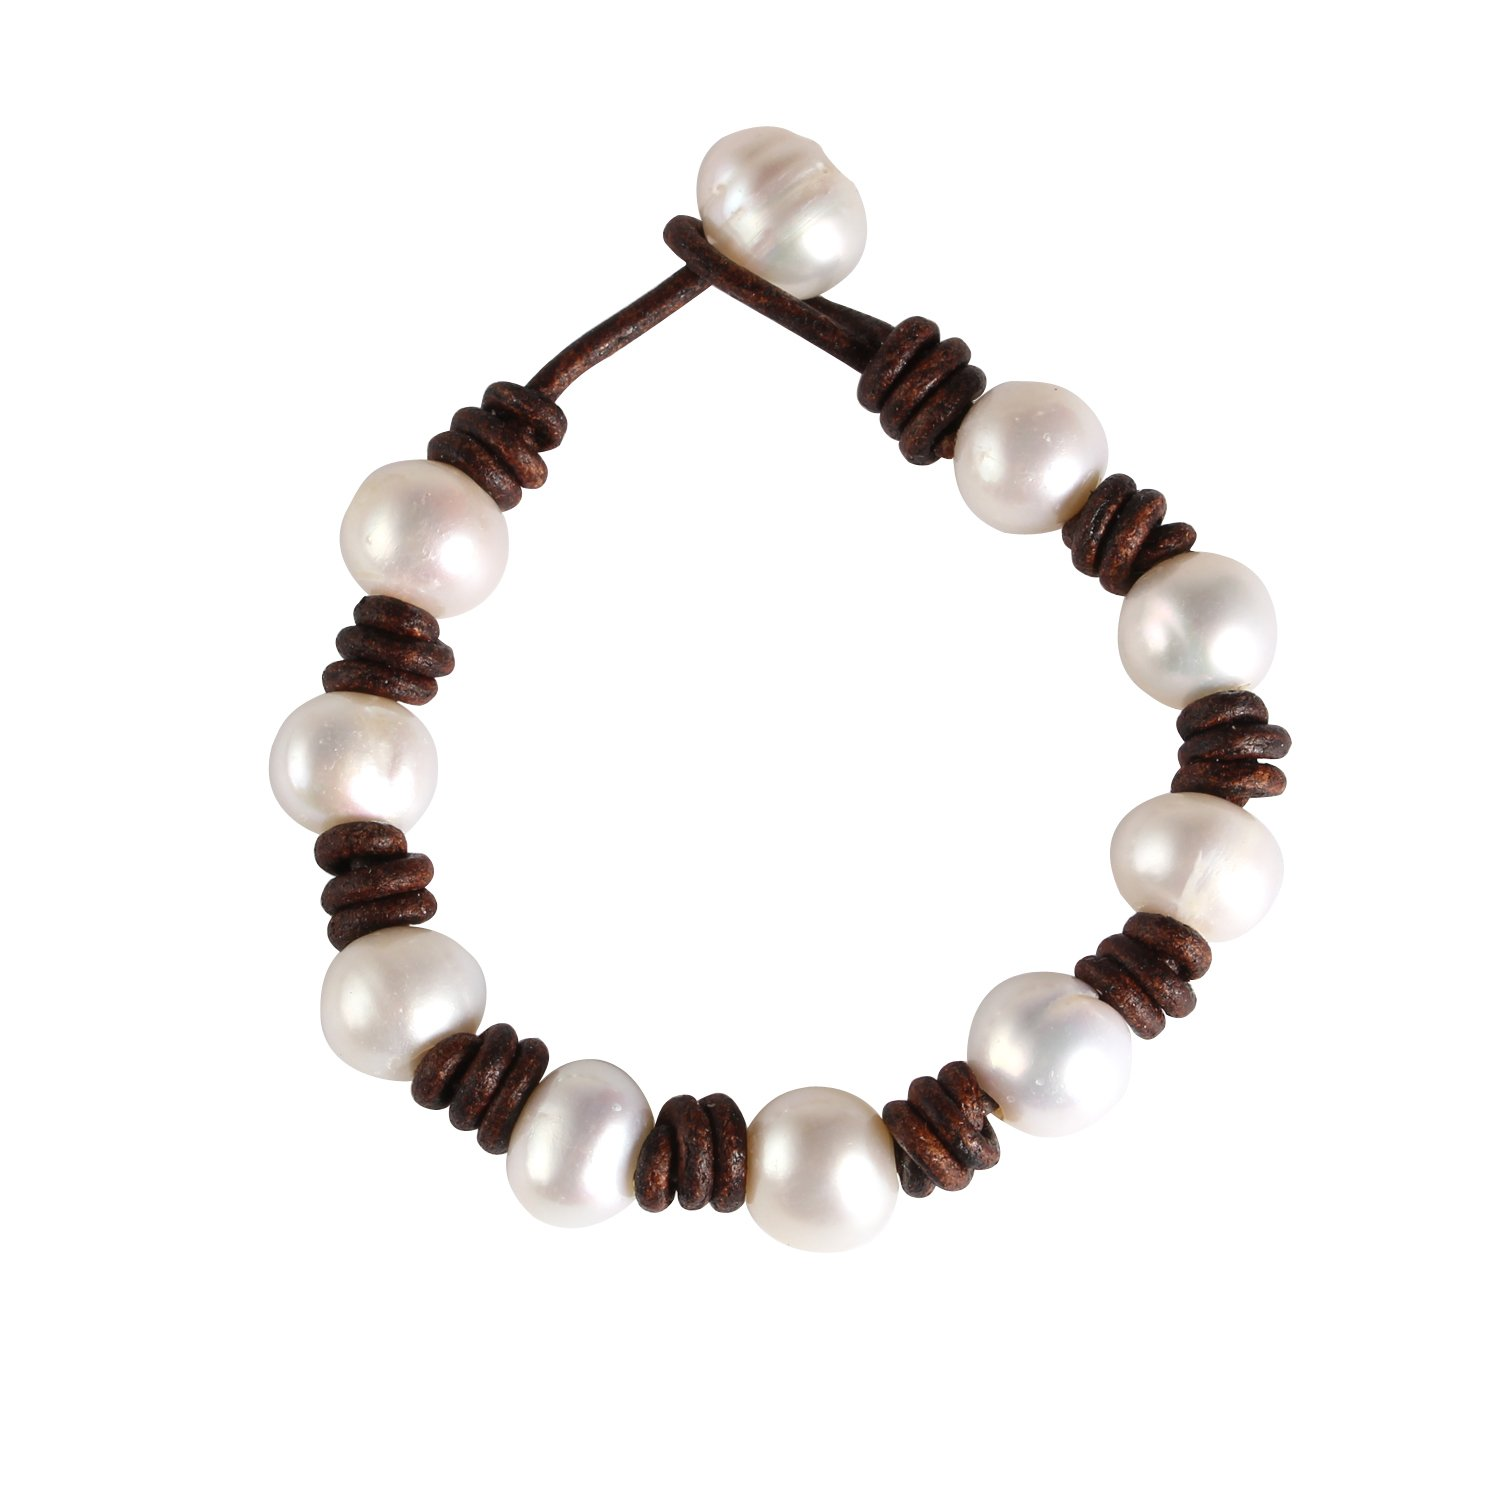 Bonnie Wrap Bracelet Pearl Leather Cord Handmade Pearls Jewelry for Women (Brown)